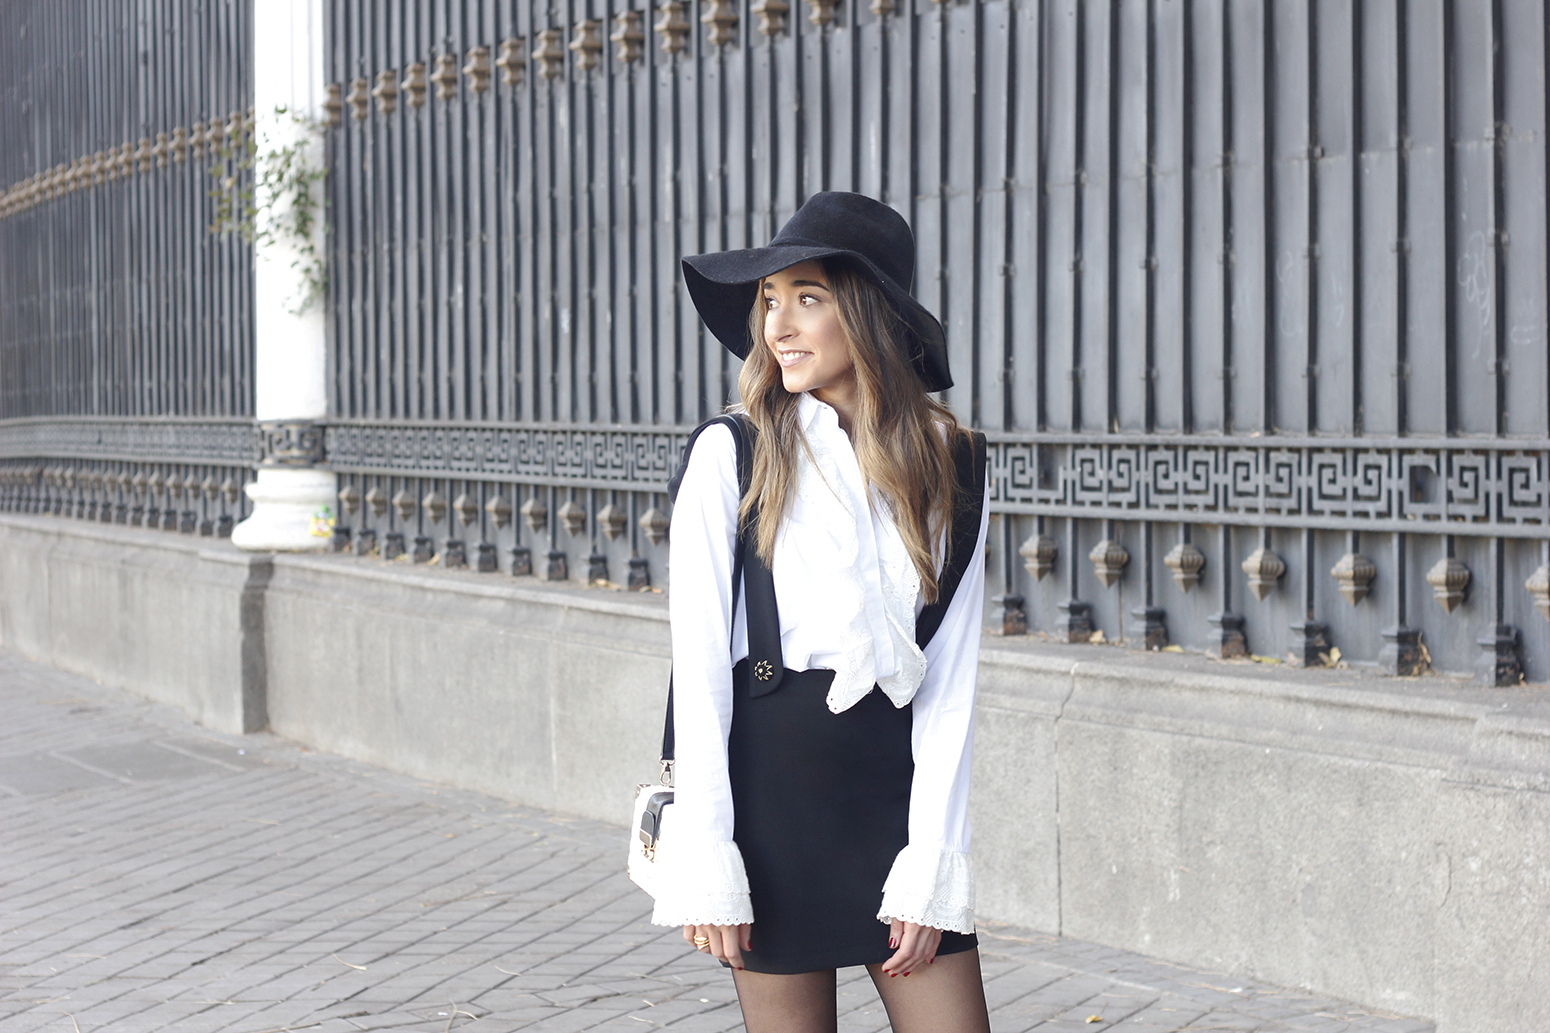 black skirt white shirt black and white outfit trend inspiration hat style fall look blanco y negro06